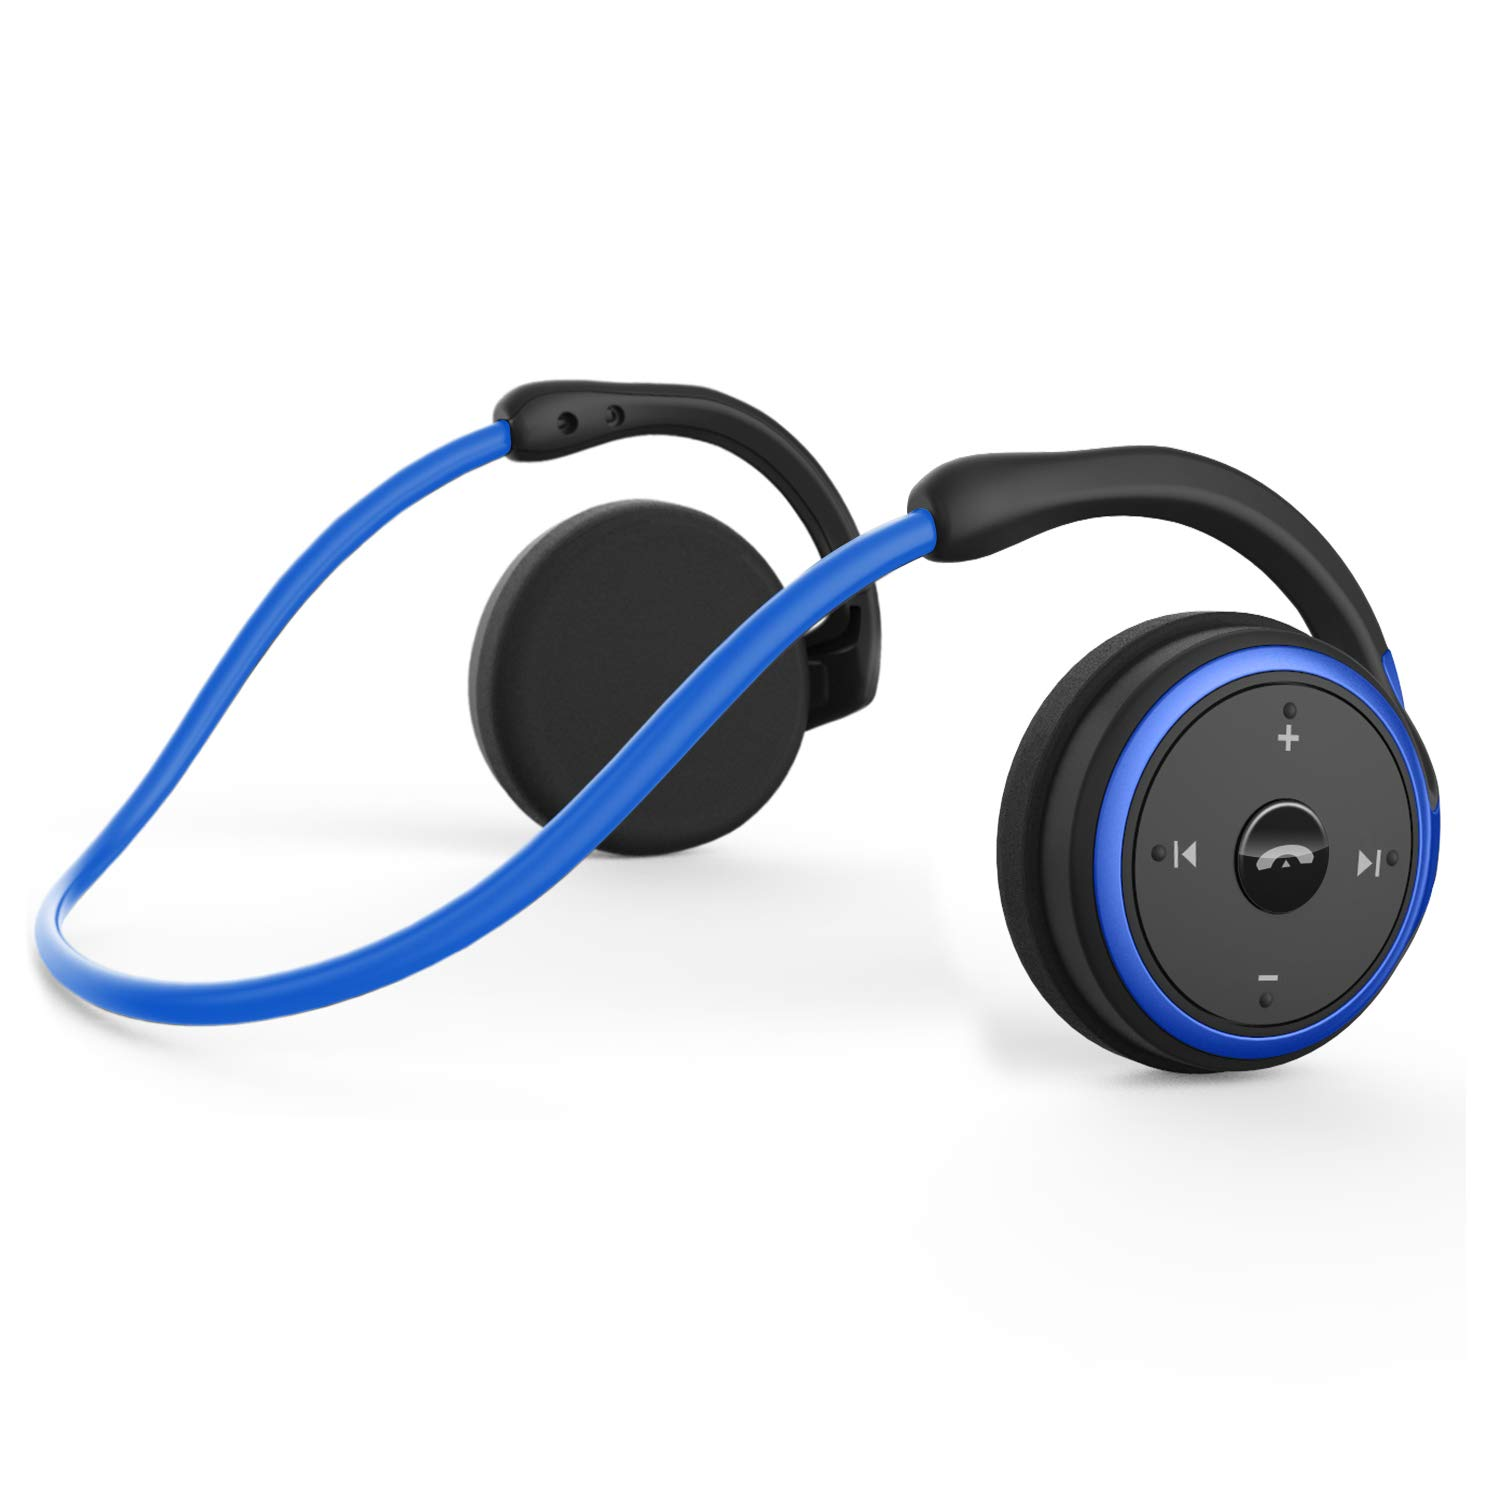 Small Bluetooth Headphones Behind The Head, Sports Wireless Headset with Built in Microphone and Crystal-Clear Sound, Fold-able and Carried in The Purse, and 12-Hour Battery Life, Blue